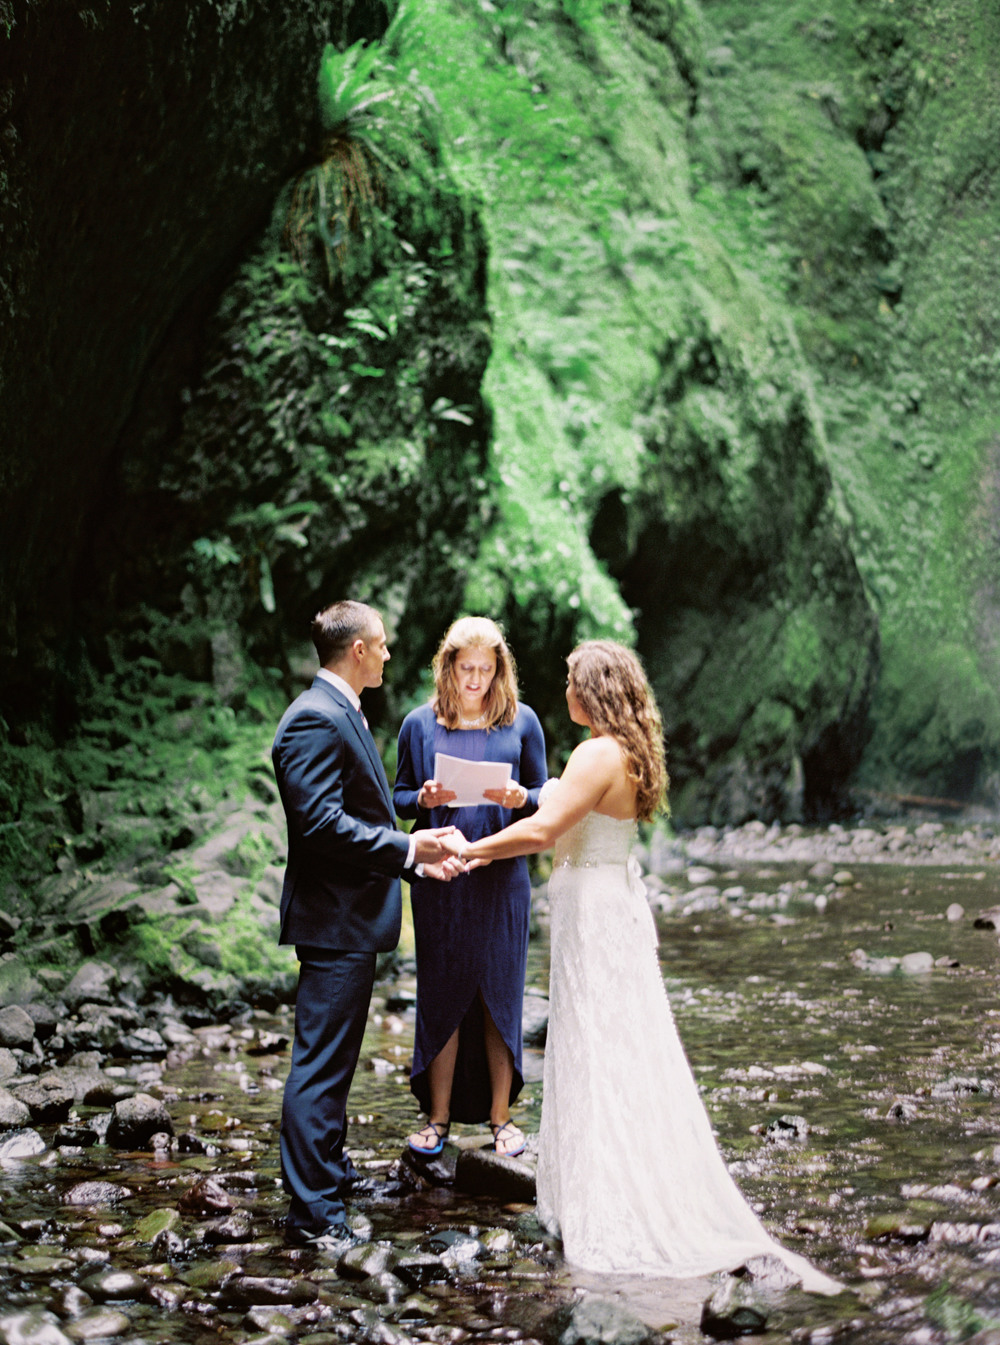 053OneontaGorge+Elopement+Photography+Videography+Oregon+OutliveCreative.jpg